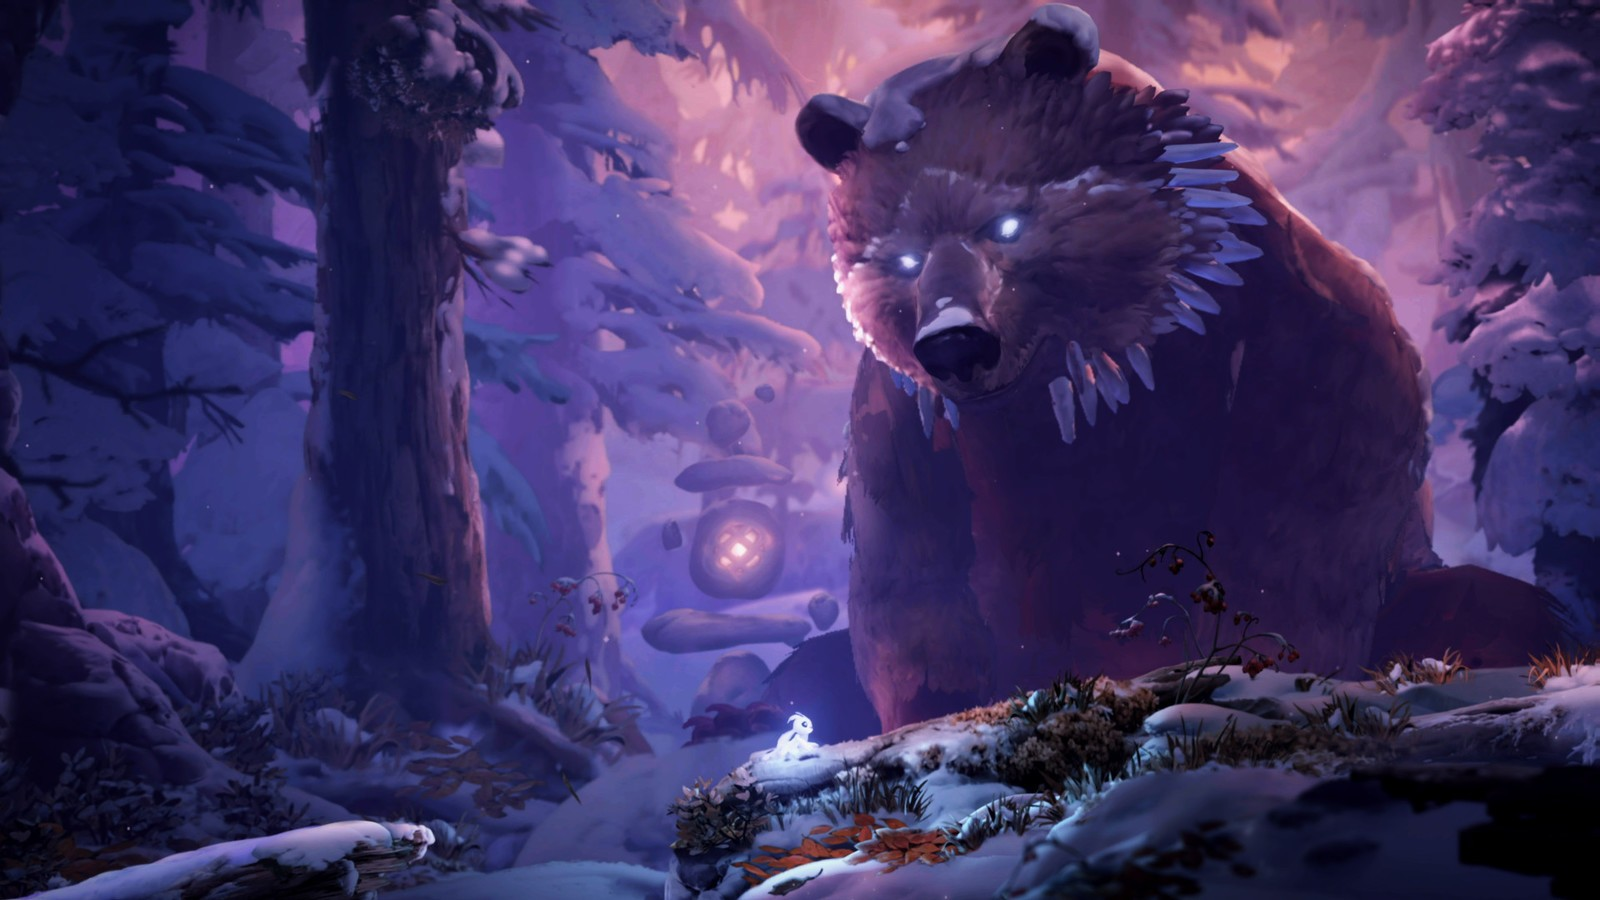 ori and the will of the wisps review pics 6